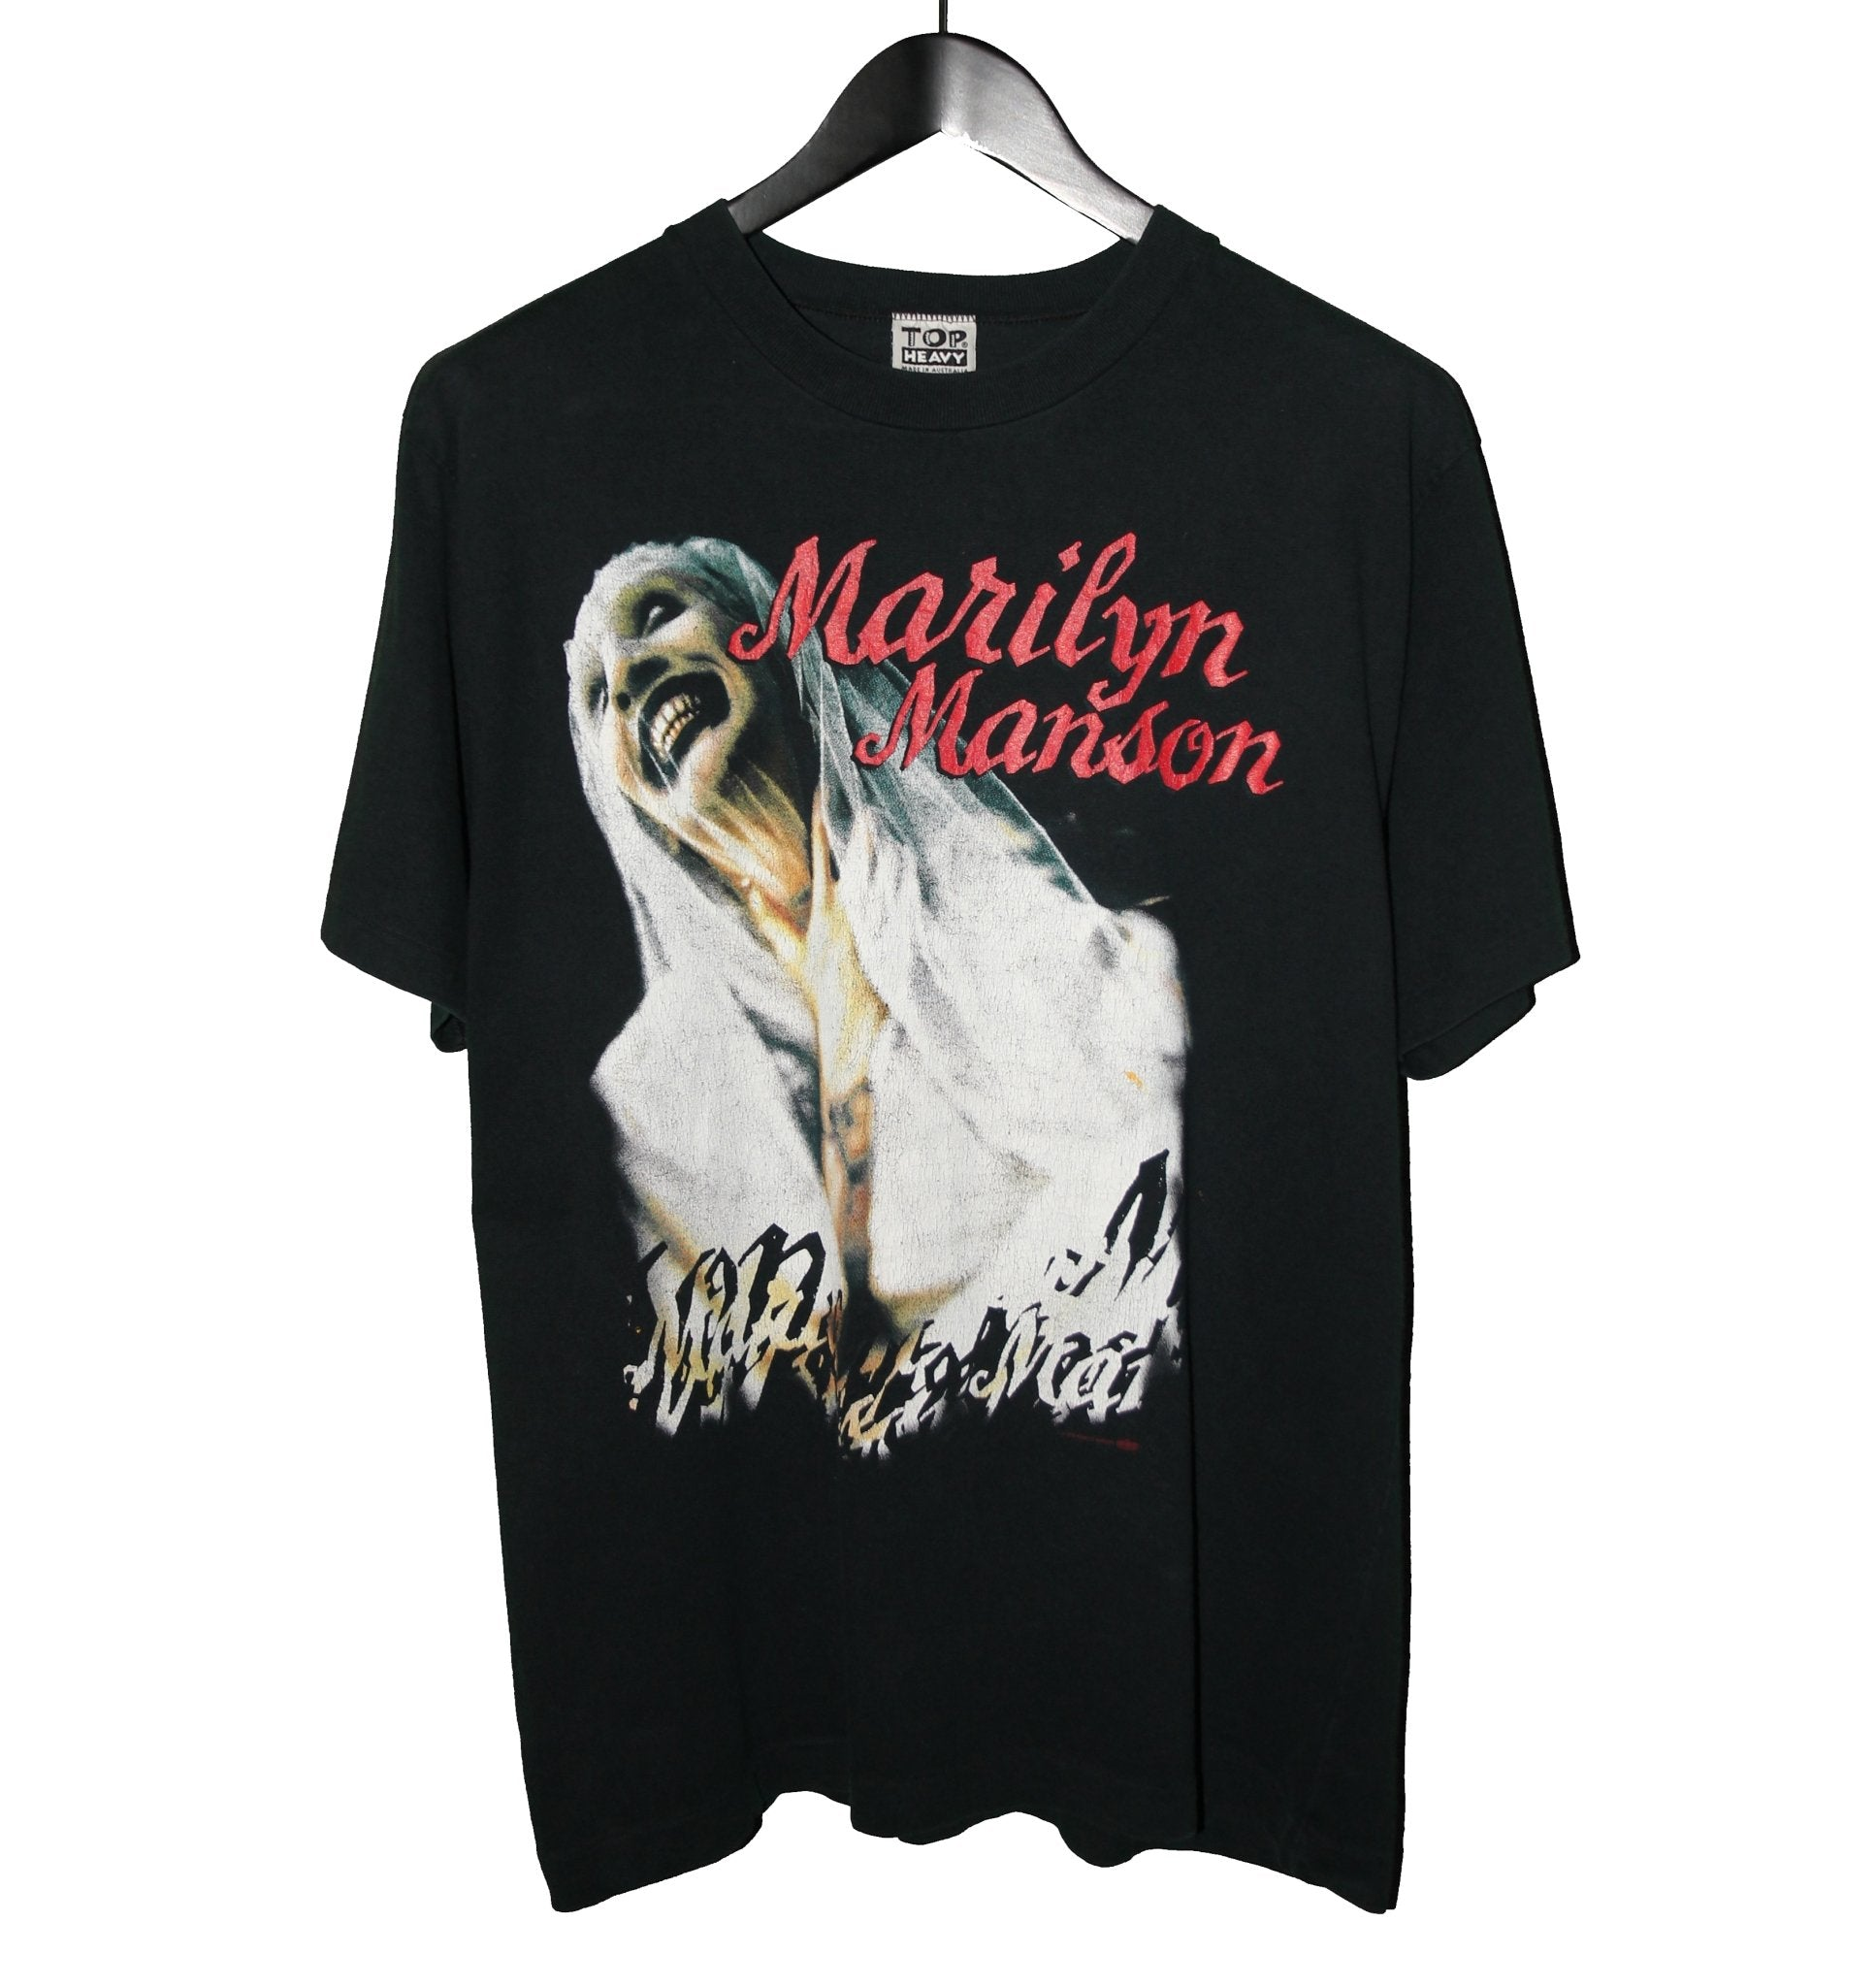 Marilyn Manson 1996 Sweet Dreams Shirt - Faded AU